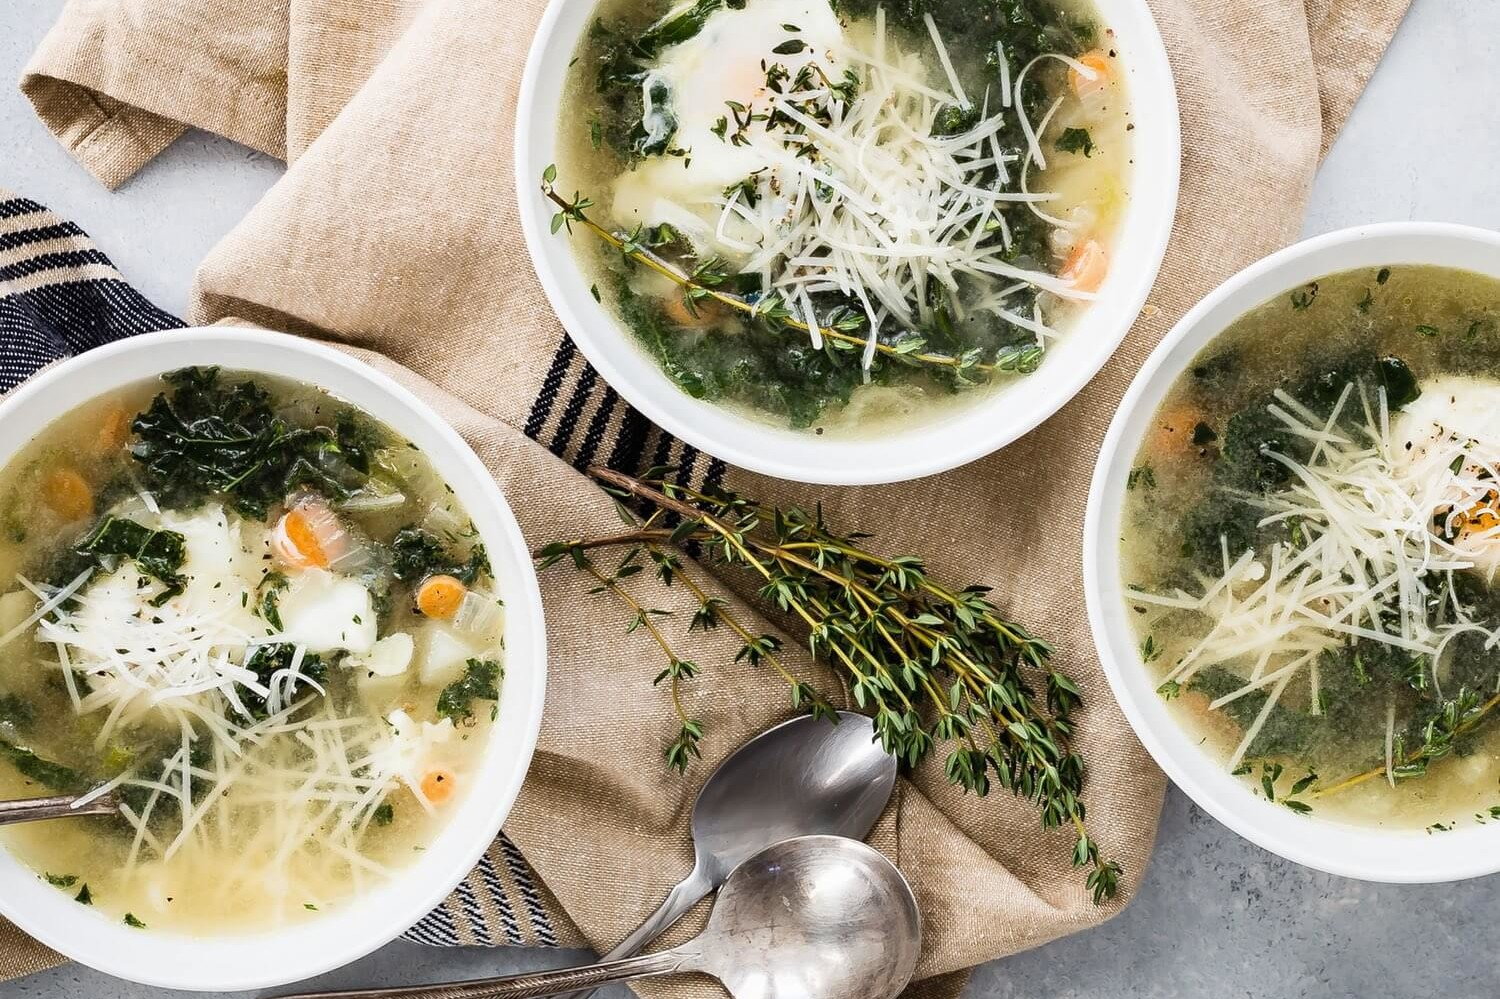 This winter kale and egg soup is perfect during the cold season and is vegetarian friendly. The soup is pictured with steamed kale, poached eggs, and parmesan cheese. | peteandgerrys.com